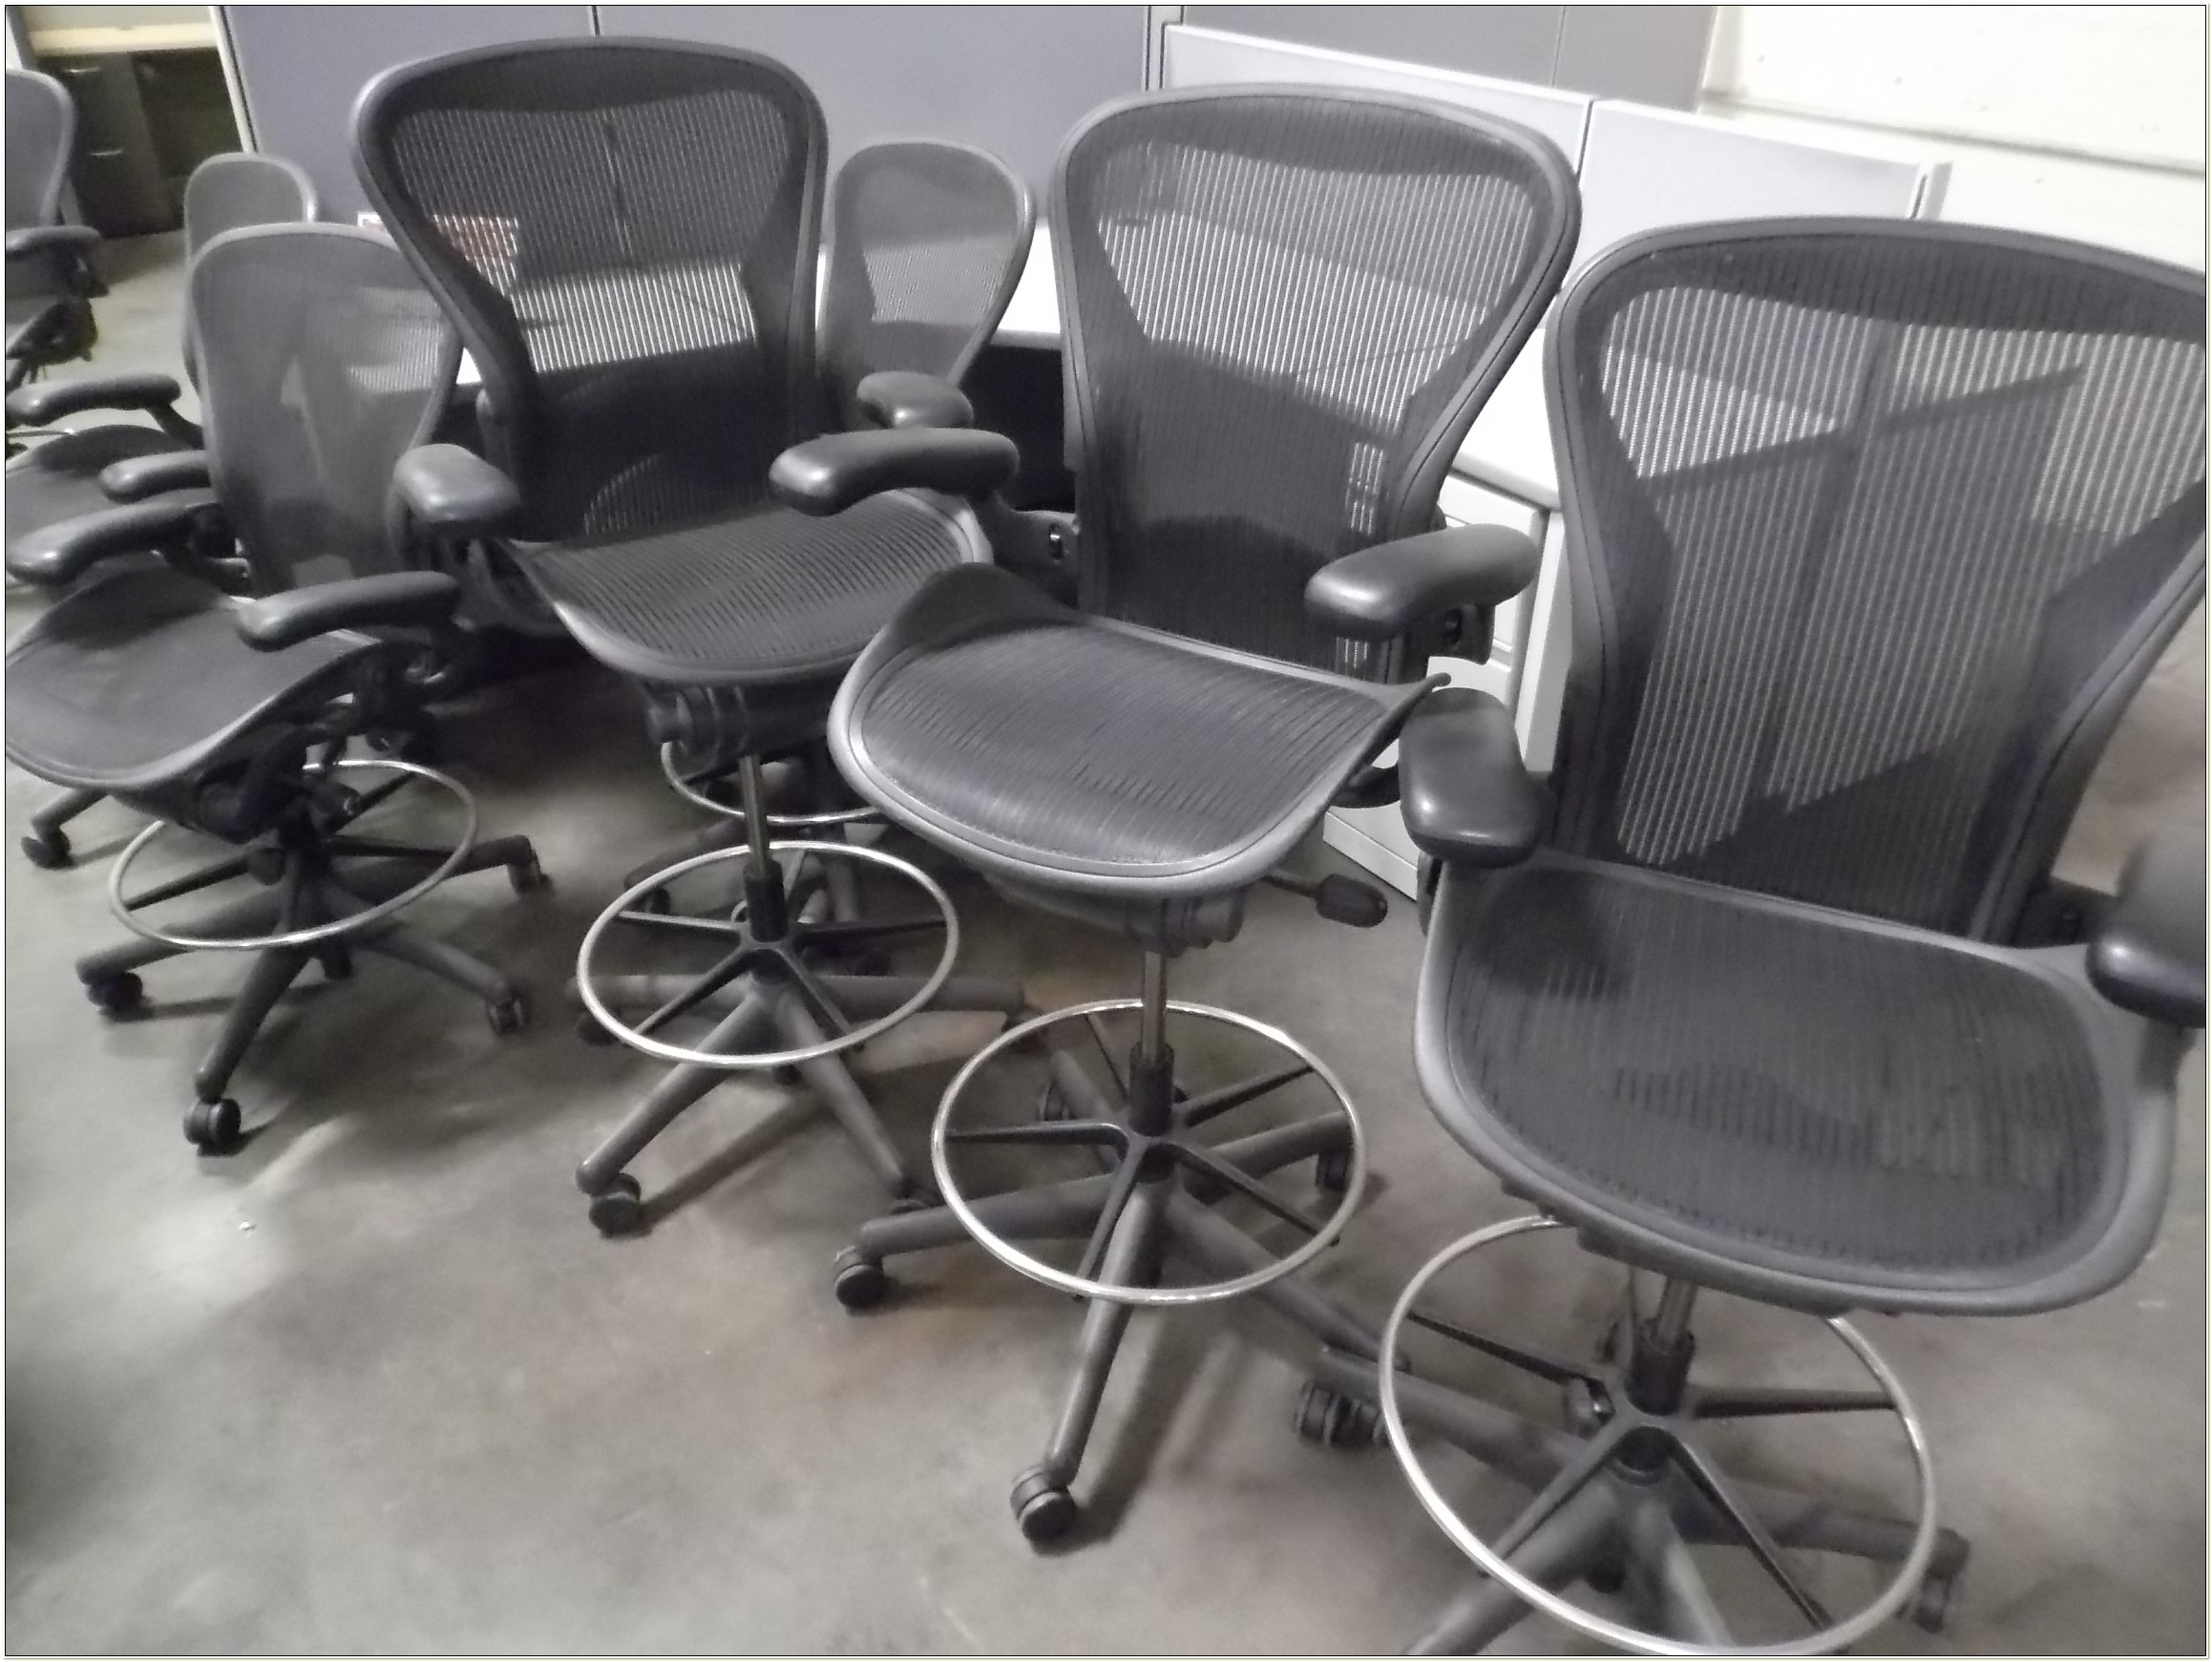 Used Herman Miller Drafting Chair